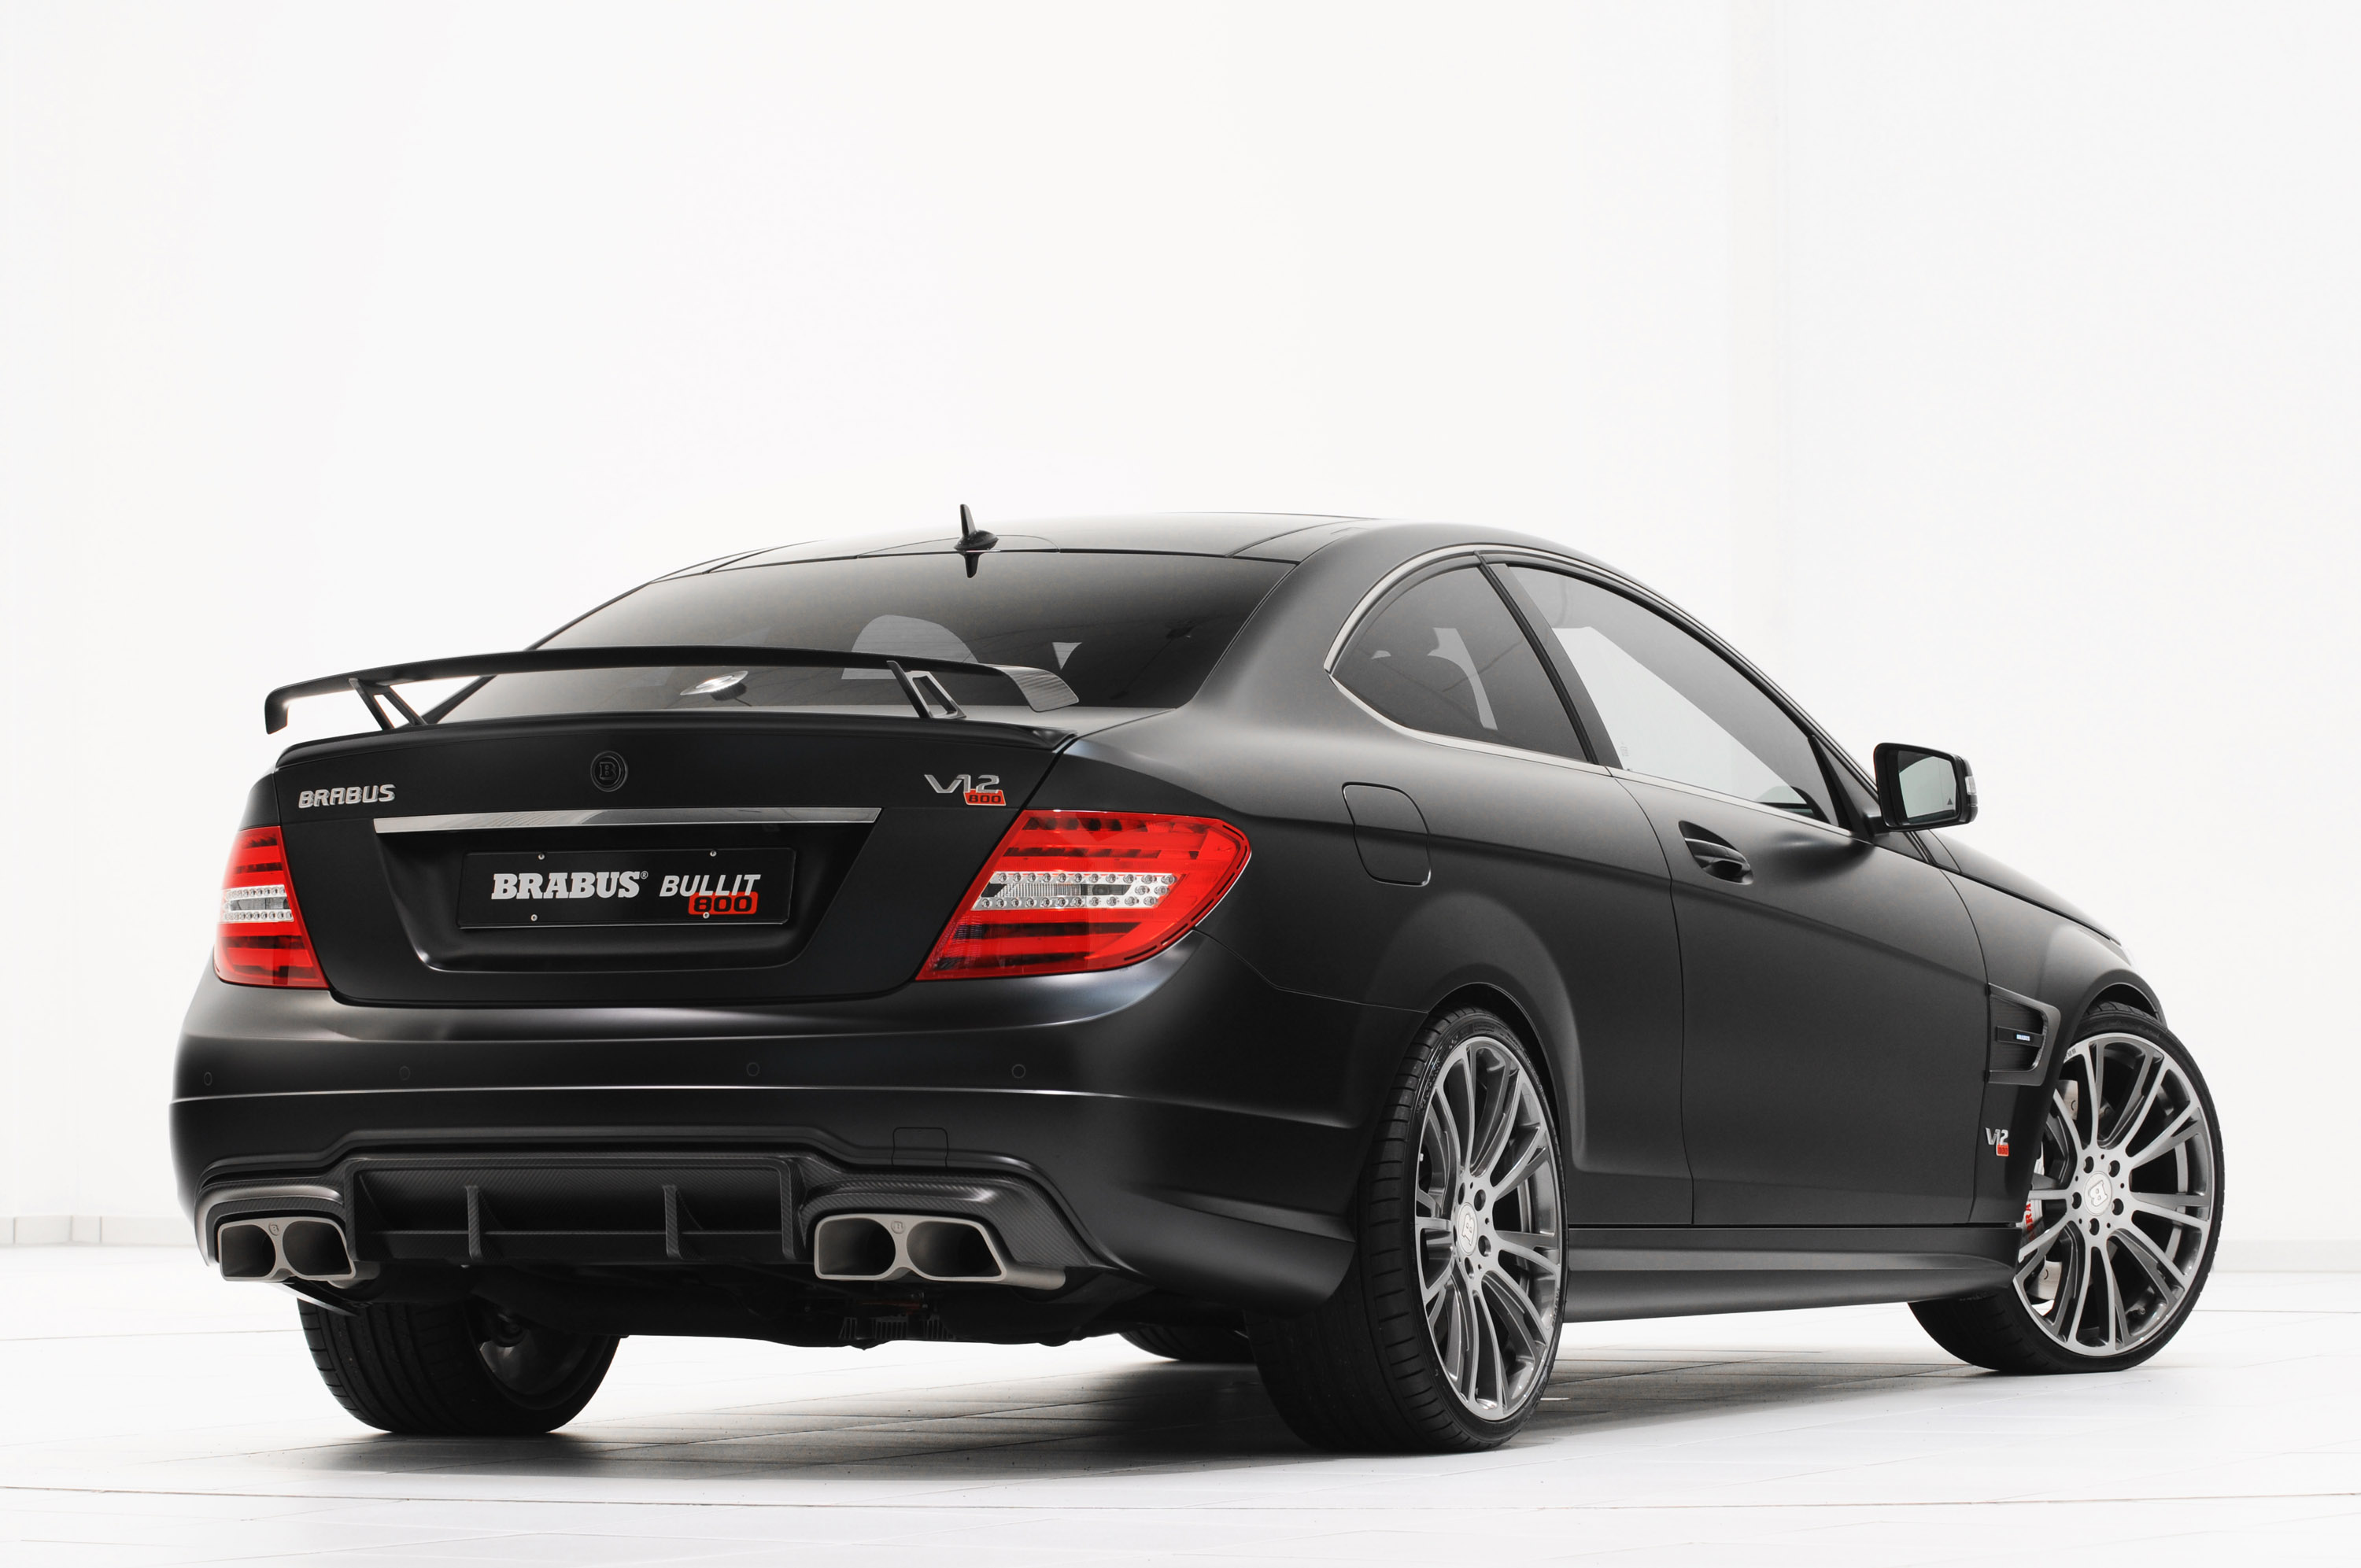 2012 brabus mercedes benz c 63 amg bullit coupe 800 for Mercedes benz brabus amg